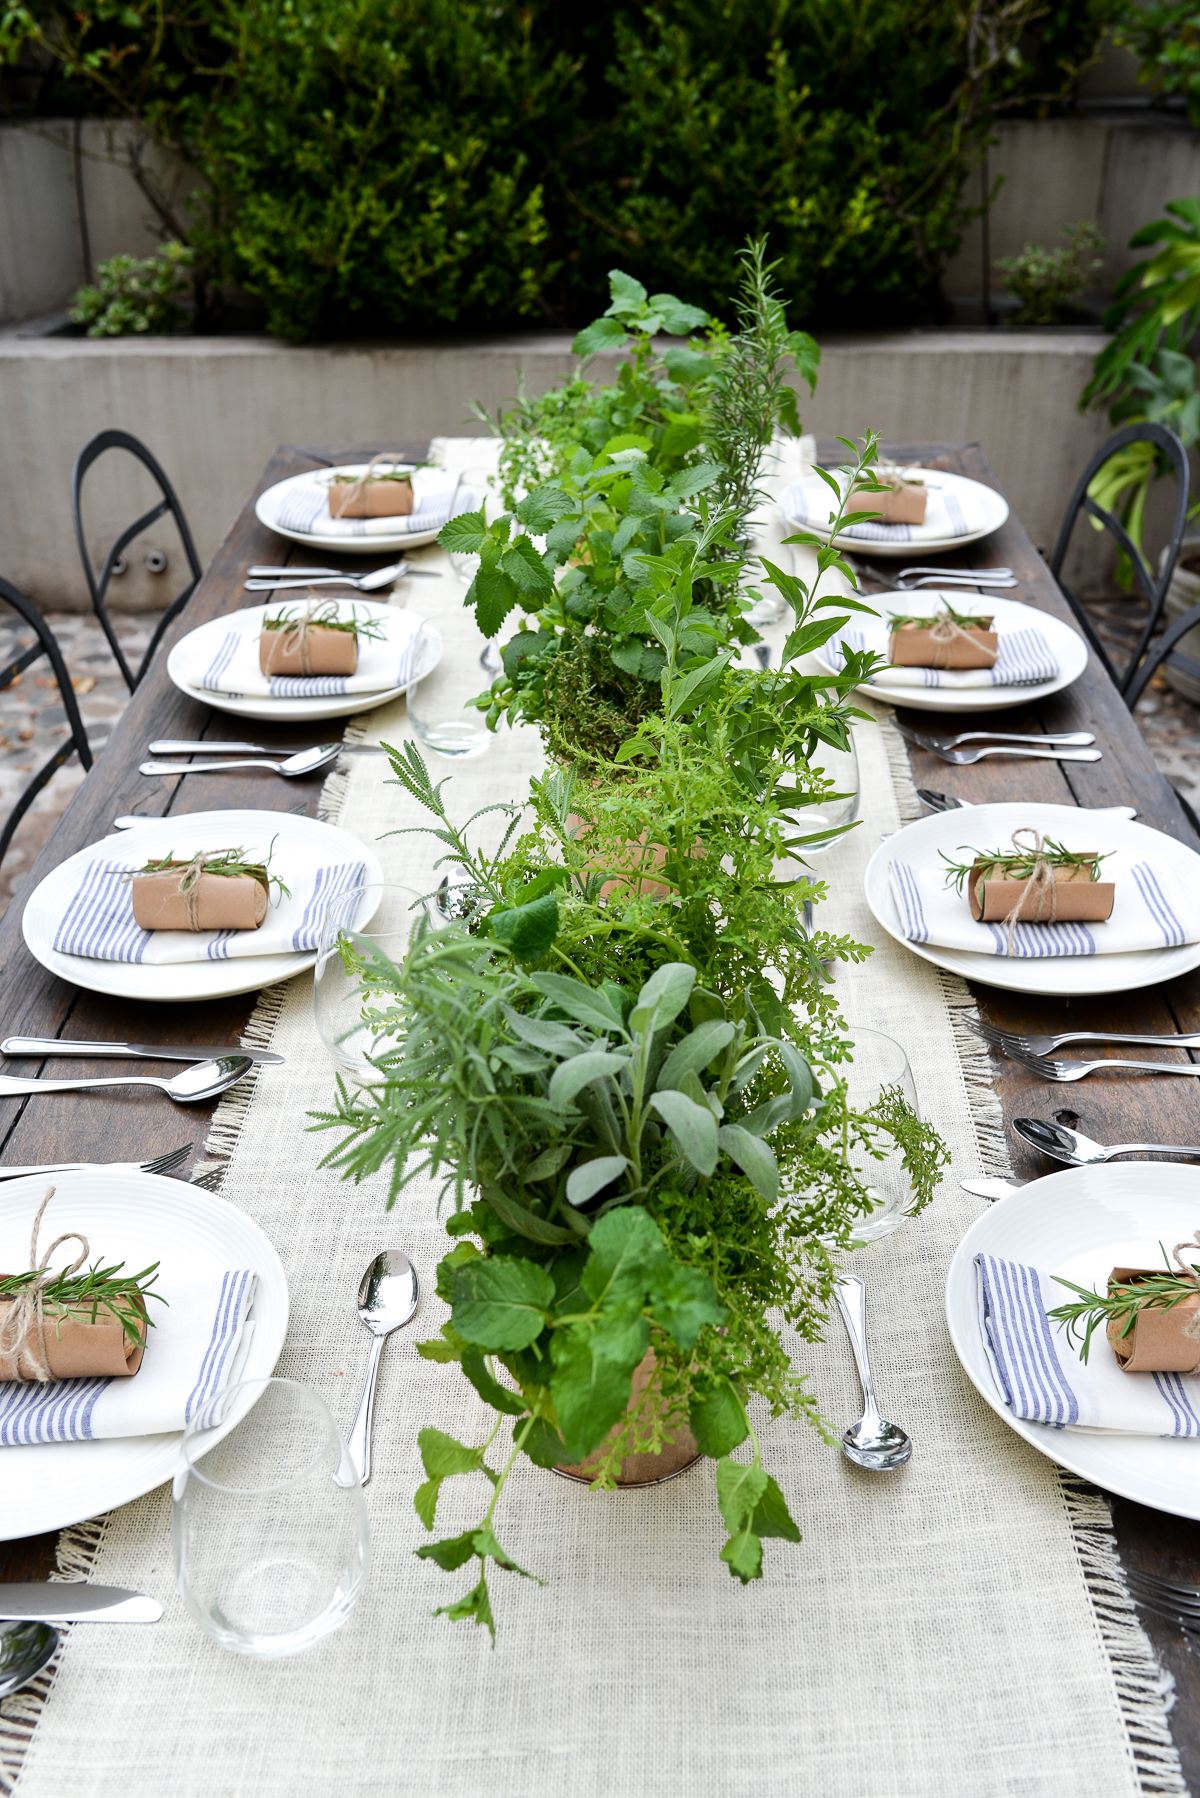 Stacie Flinner Black Twine Summer Garden Party Blueprint-19